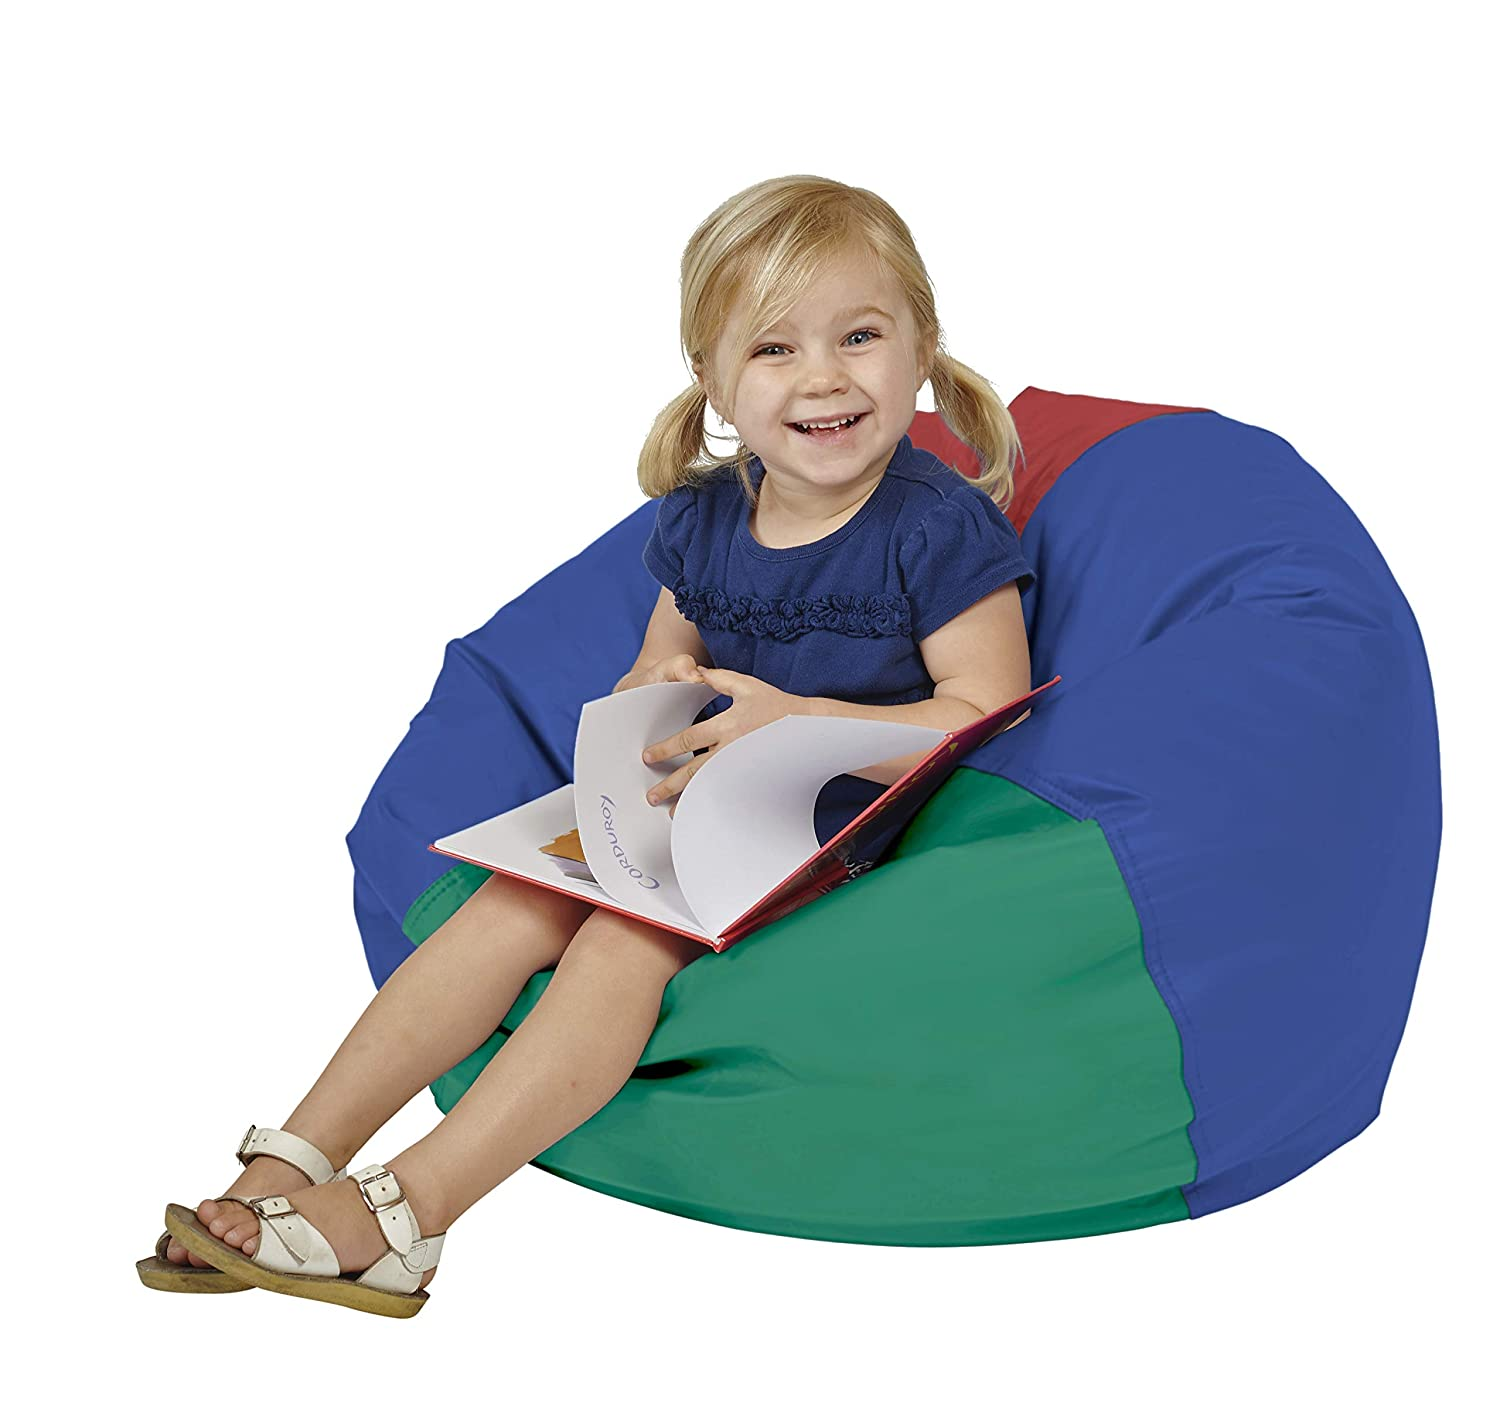 """FDP SoftScape Classic 26"""" Junior Bean Bag Chair, Furniture for Kids, Perfect for Reading, Playing Video Games or Relaxing, Alternative Seating for Classrooms, Daycares, Libraries or Home - Assorted"""